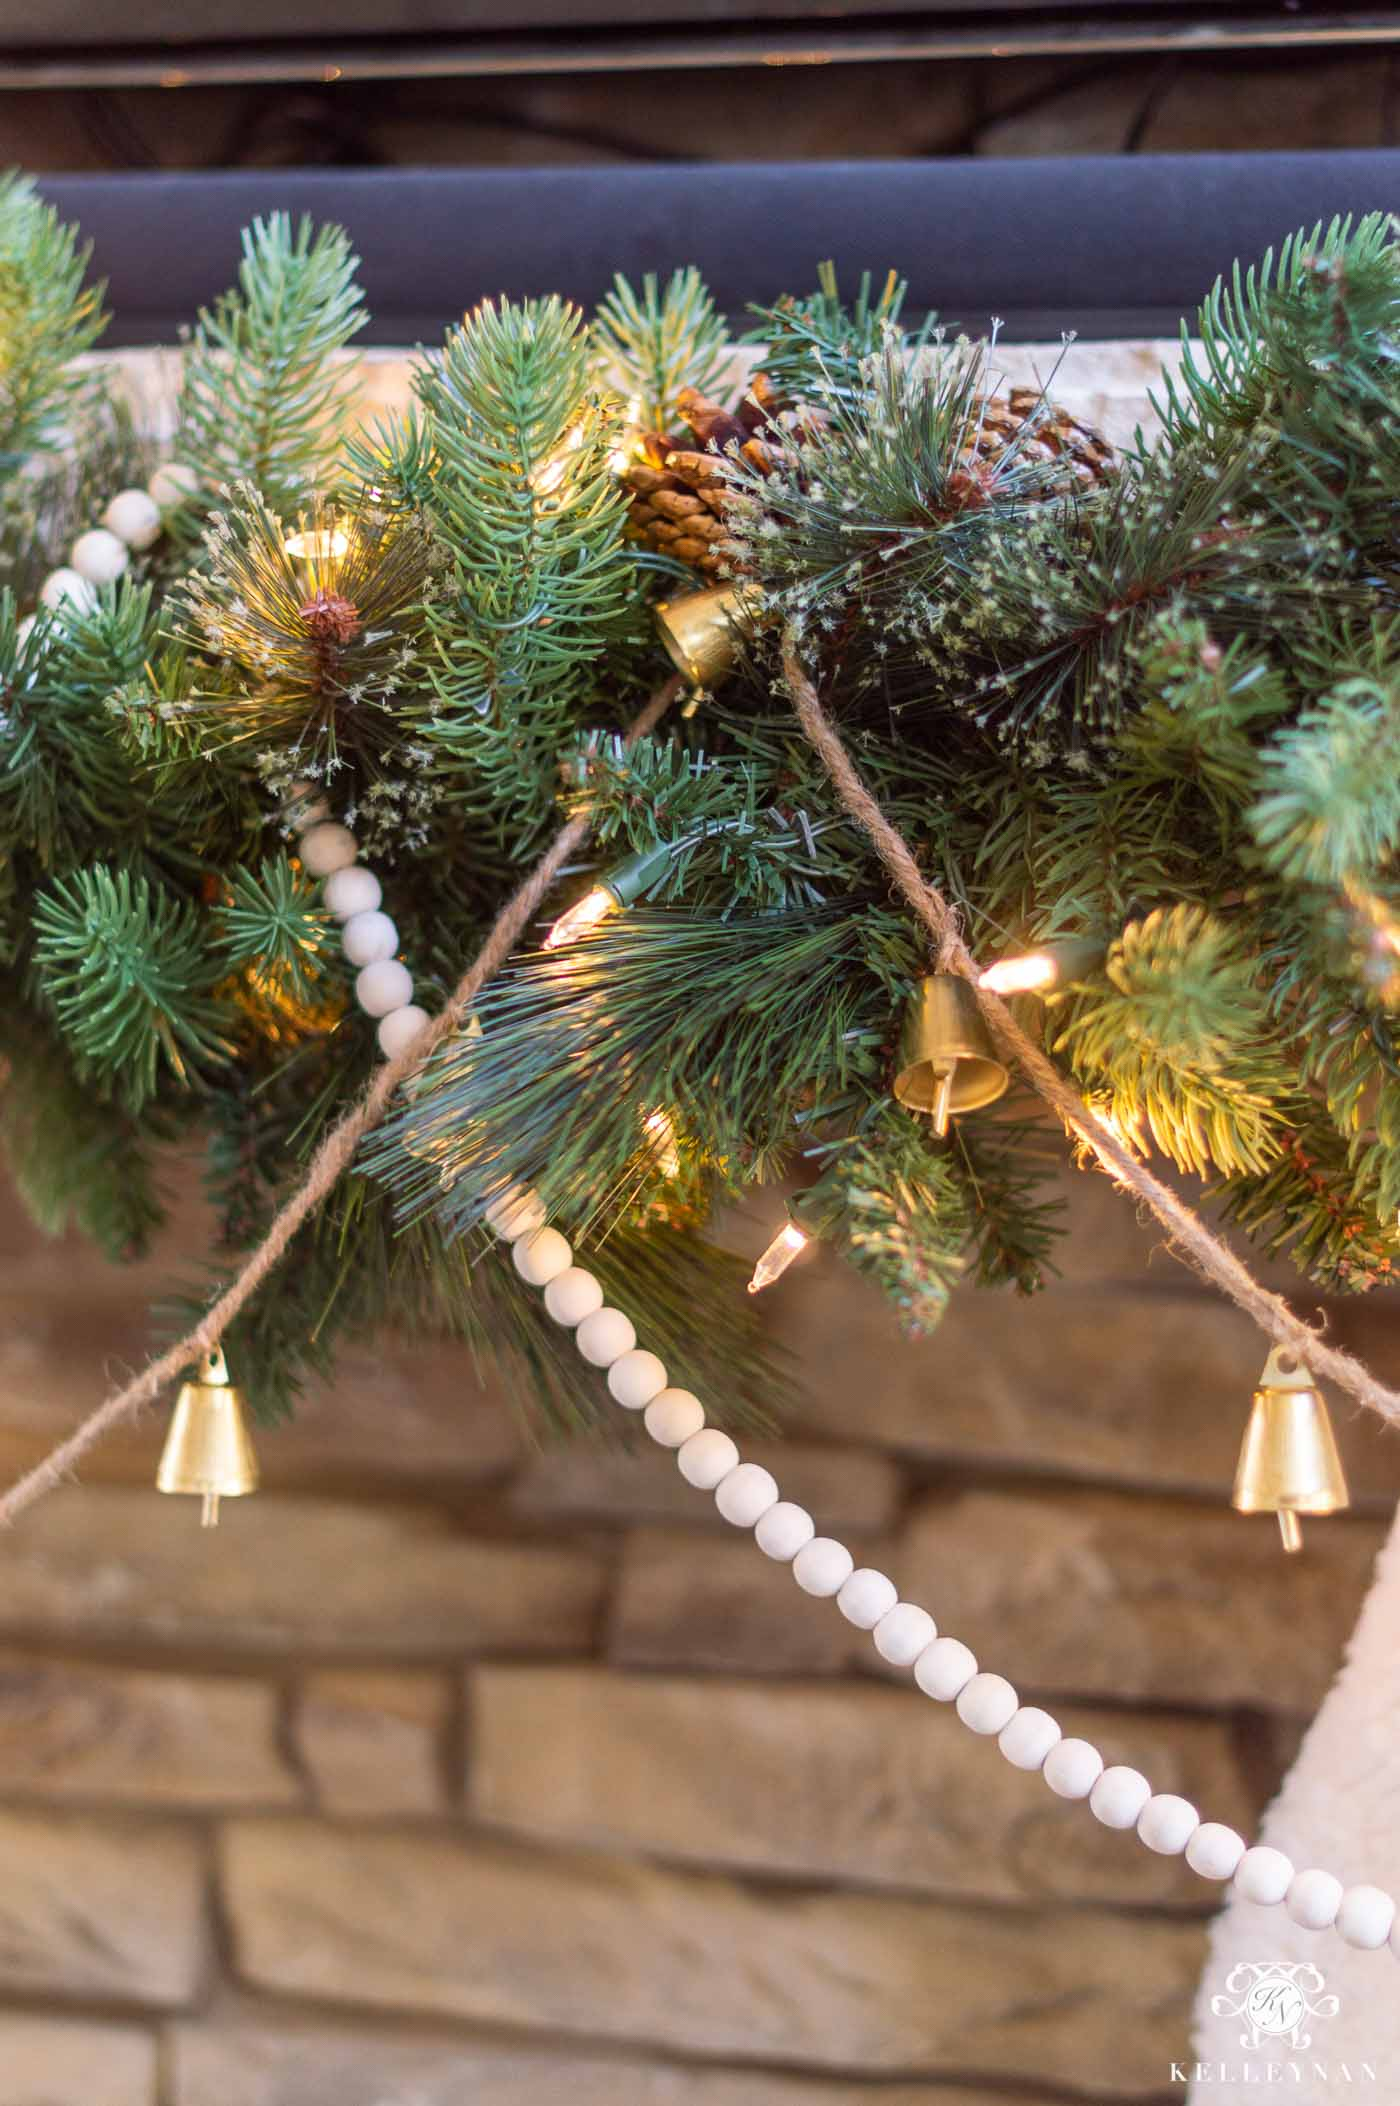 How to Layer Christmas Garlands on the Mantel